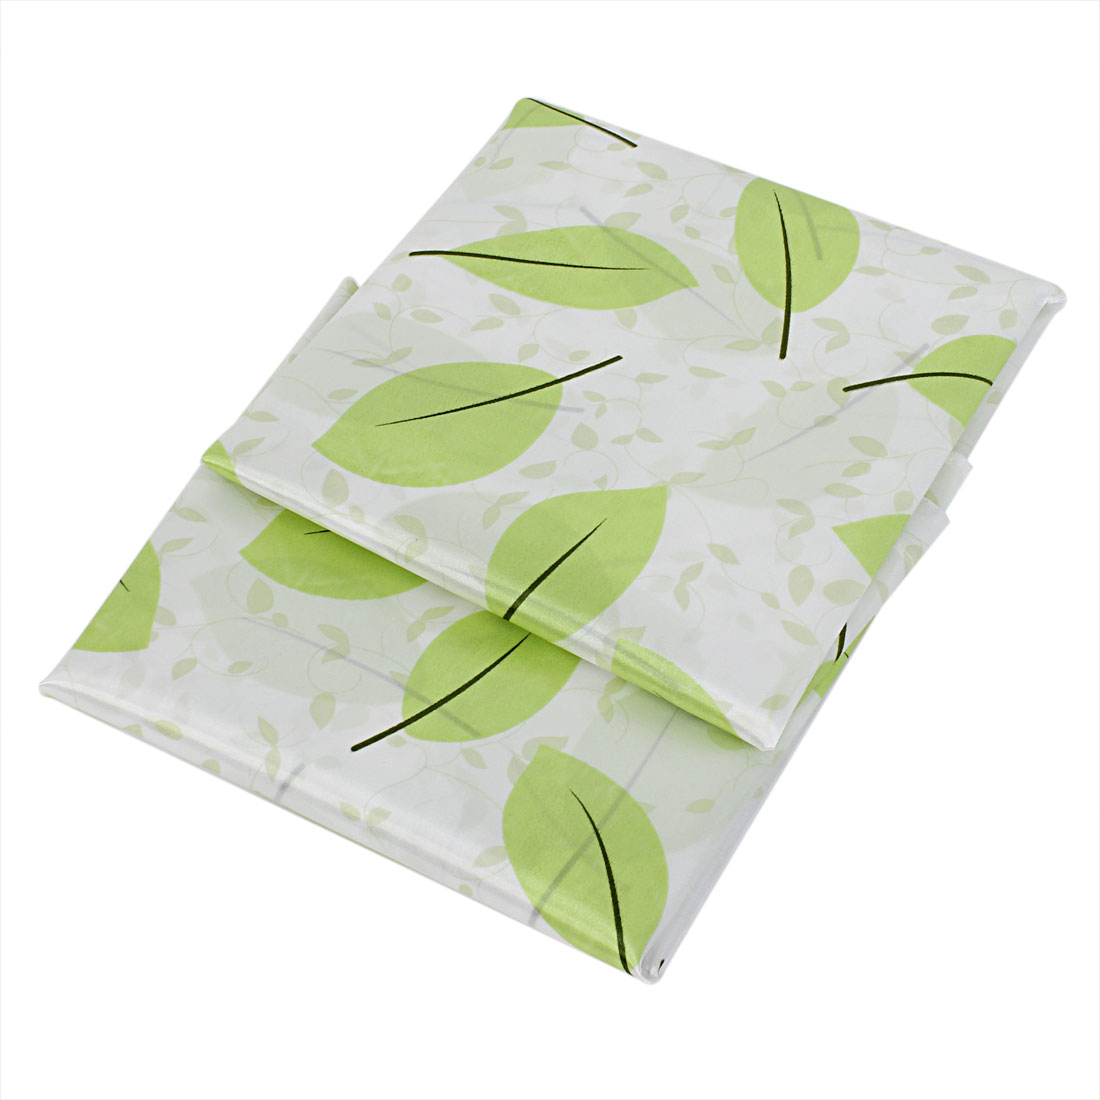 Home Bathroom Fabric Leaves Pattern Shower Curtain 170 x 180cm